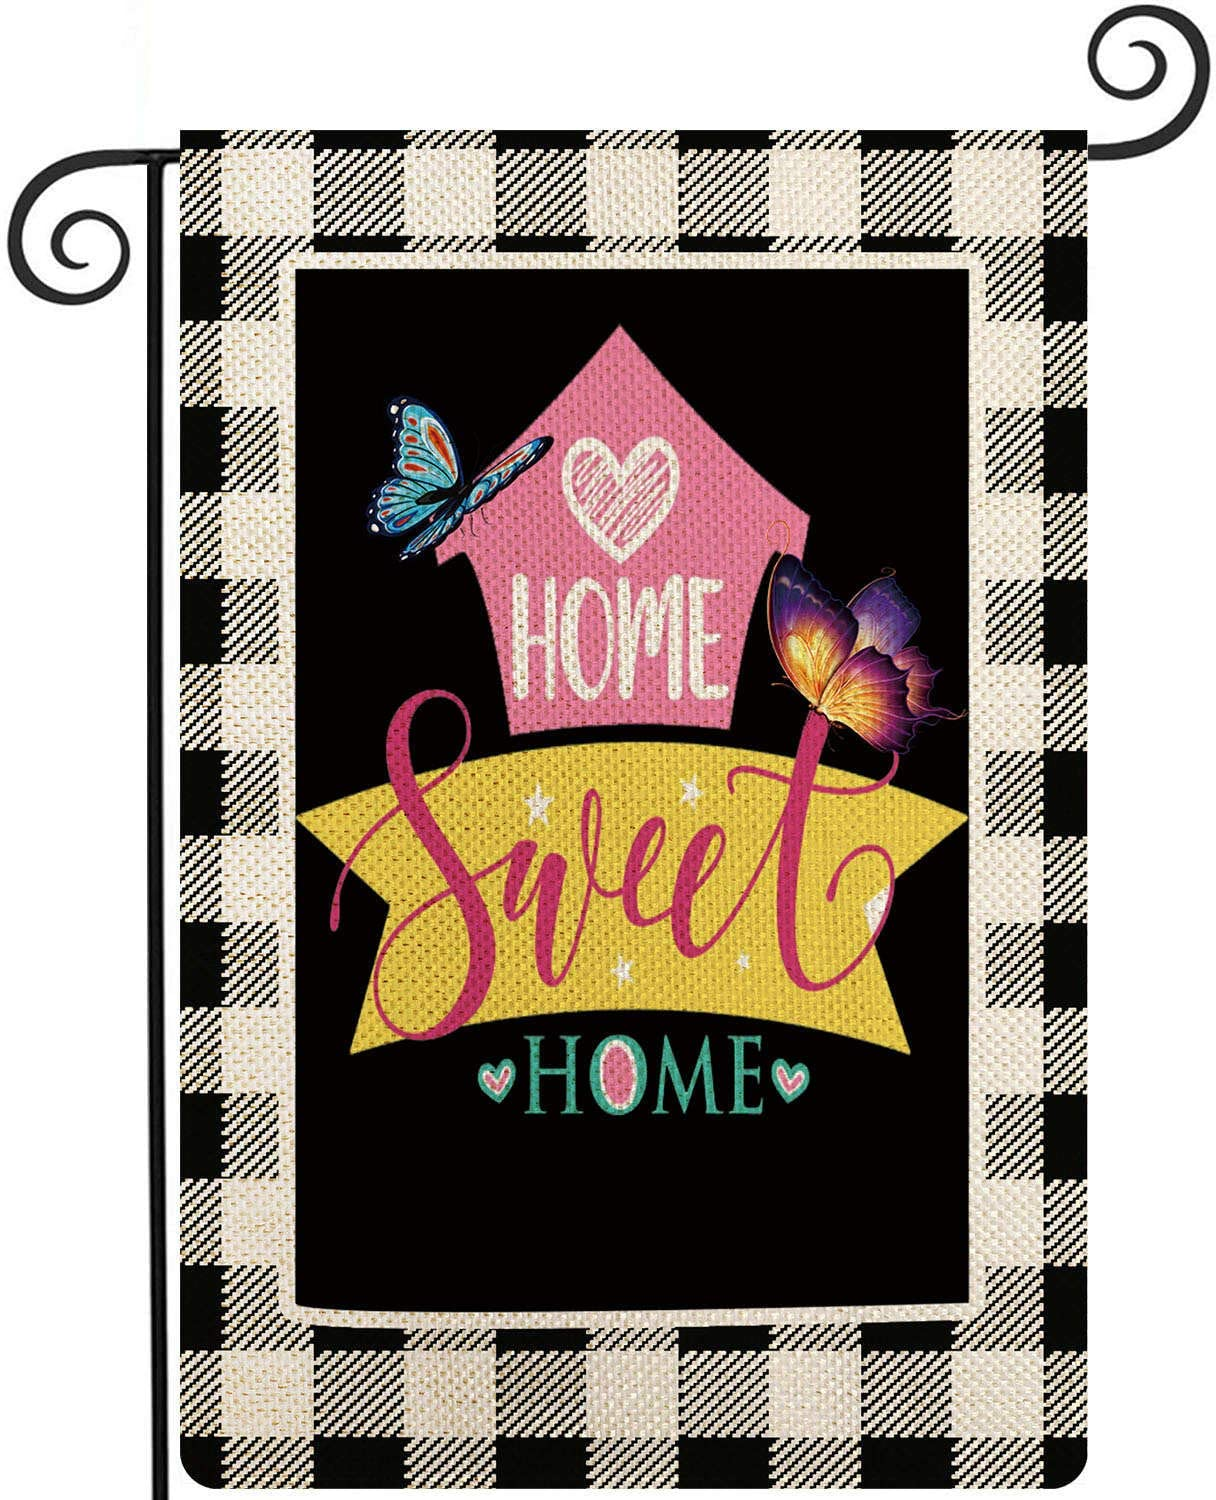 Coskaka Home Decorative Welcome Home Sweet Home Garden Flag Buffalo Plaid Check House Yard Outdoor Flag Black and White Burlap Spring Summer Outside Farmhouse Holiday Flag 12.5 x 18